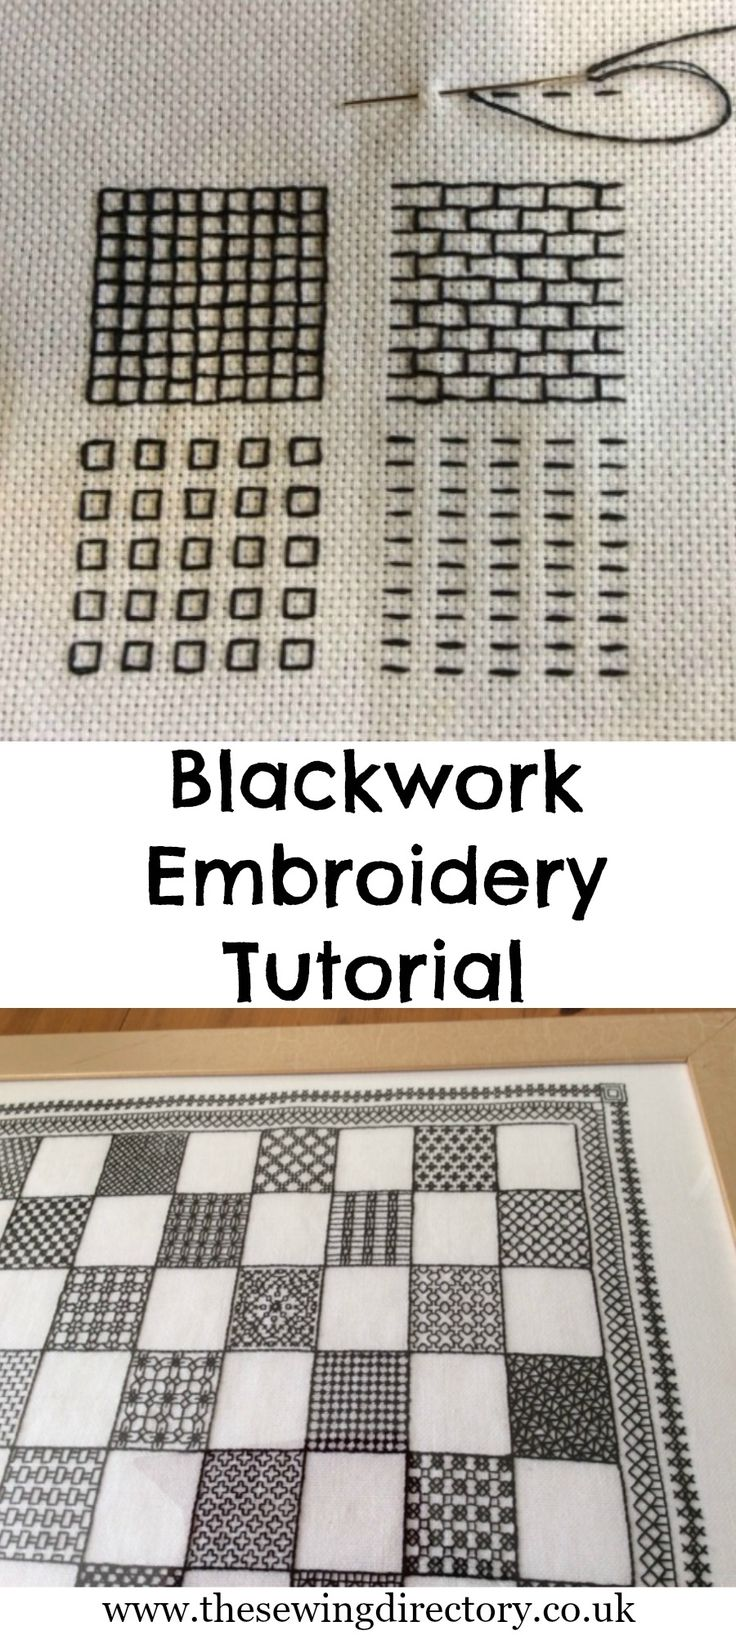 Best 25 blackwork embroidery ideas on pinterest black work blackwork embroidery tutorial part of our 10 part hand embroidery series bankloansurffo Gallery